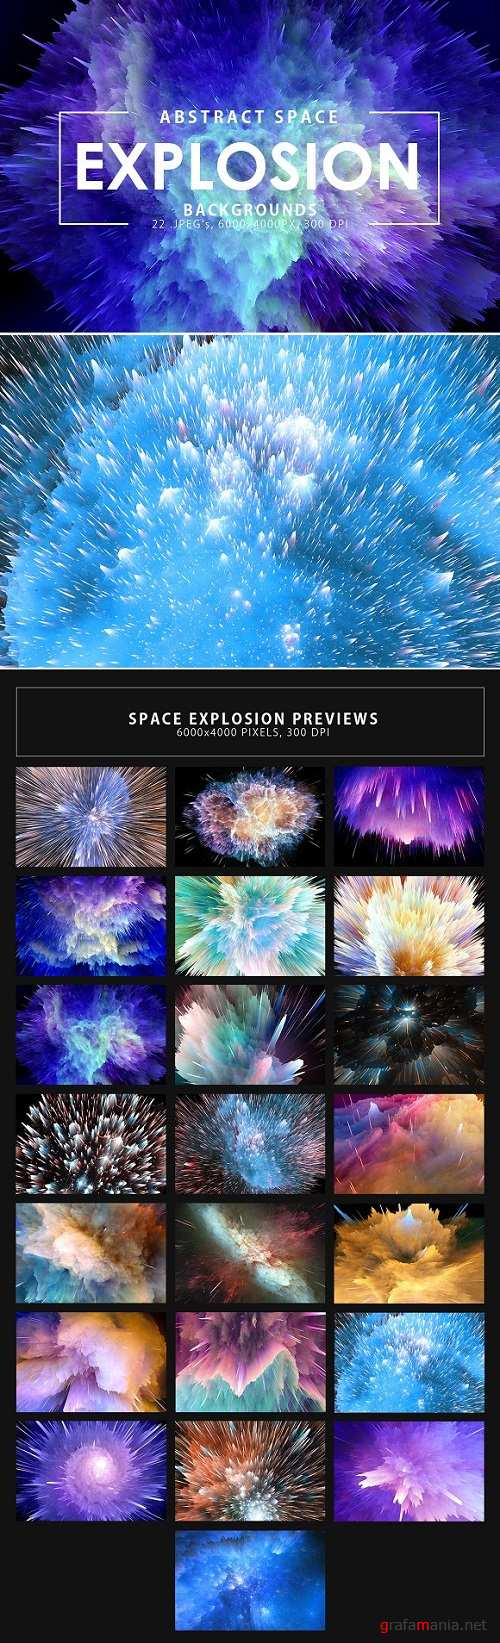 Space Explosion Backgrounds - 2295724